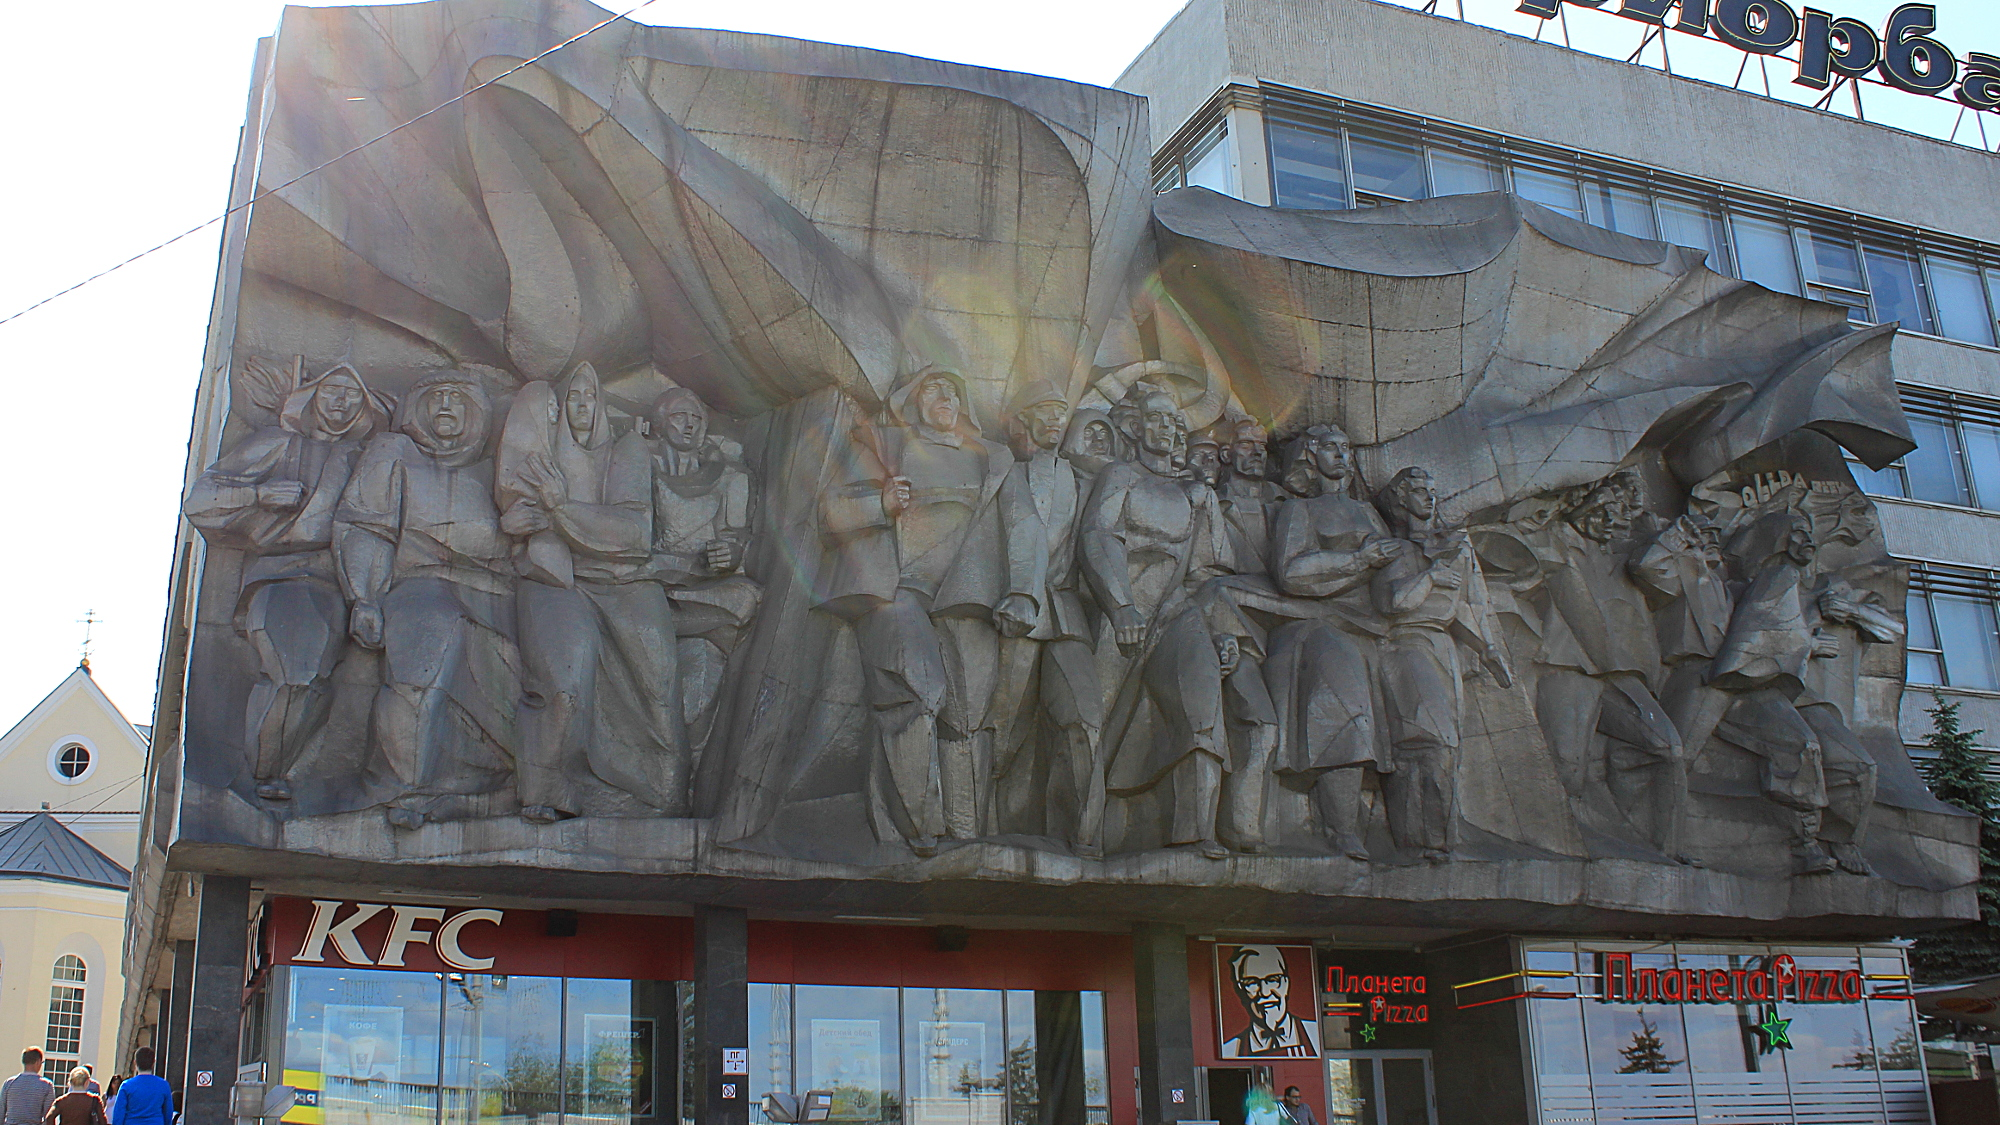 A socialist wall sculpture and a KFC fast food restaurant below it.